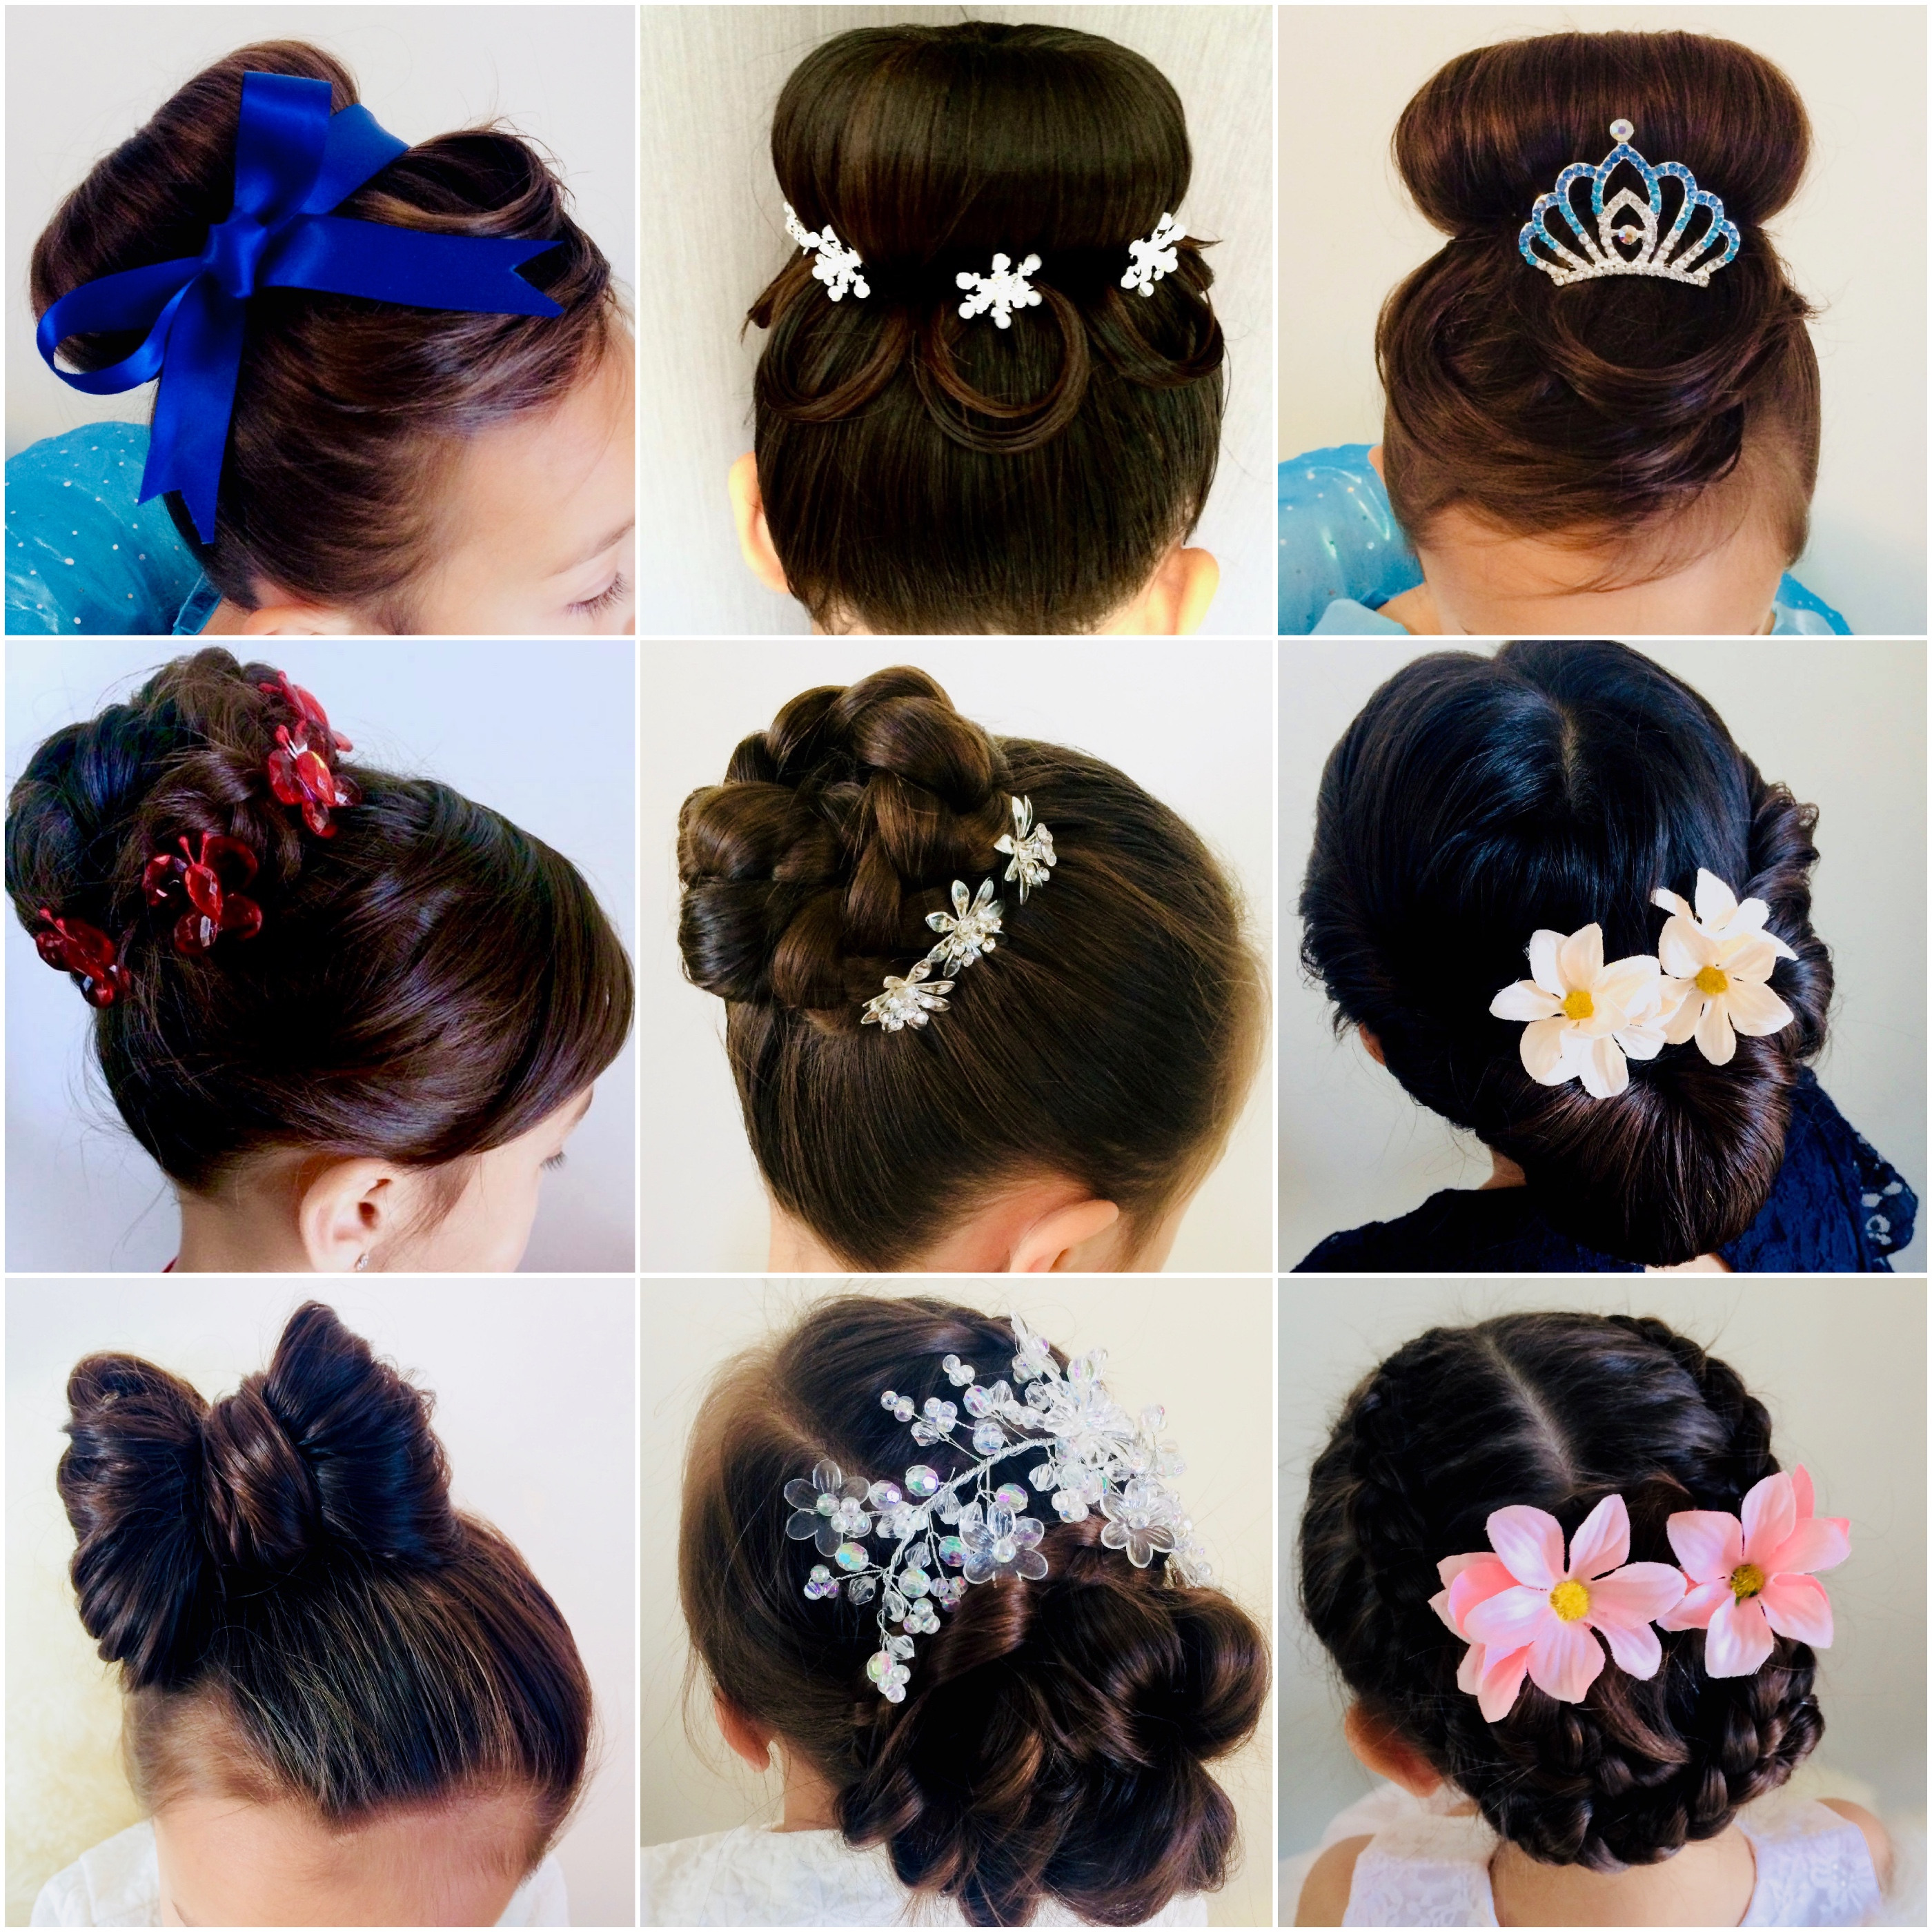 Cathleen Bilien - coiffeuse mariage